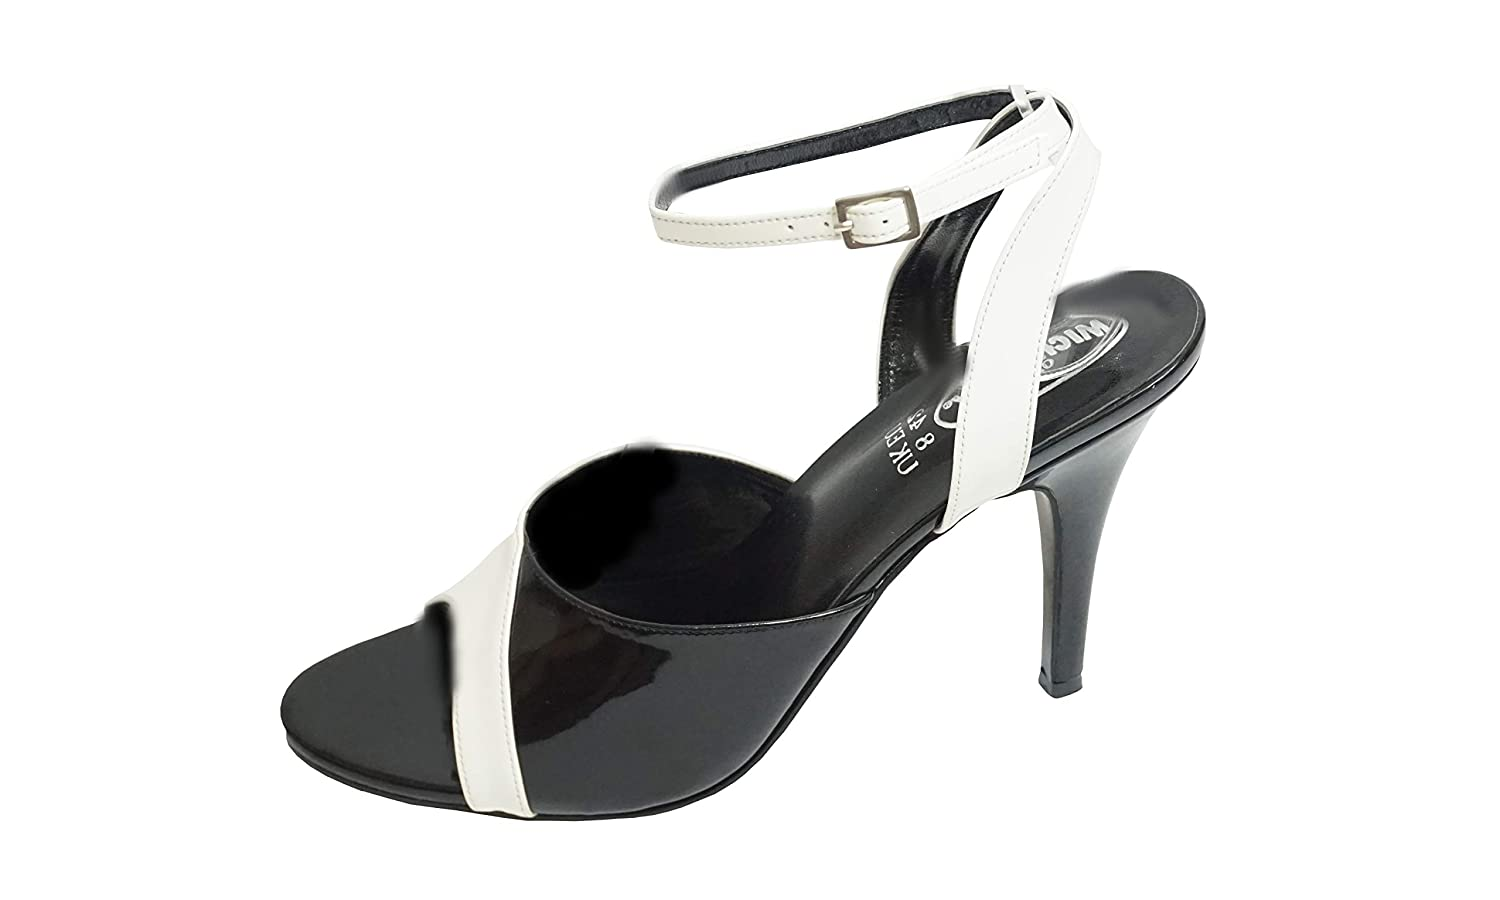 1702ab2c825 MicheleX 8066 Black and White PVC Sandals Shoes LGBTQ+: Amazon.co.uk ...